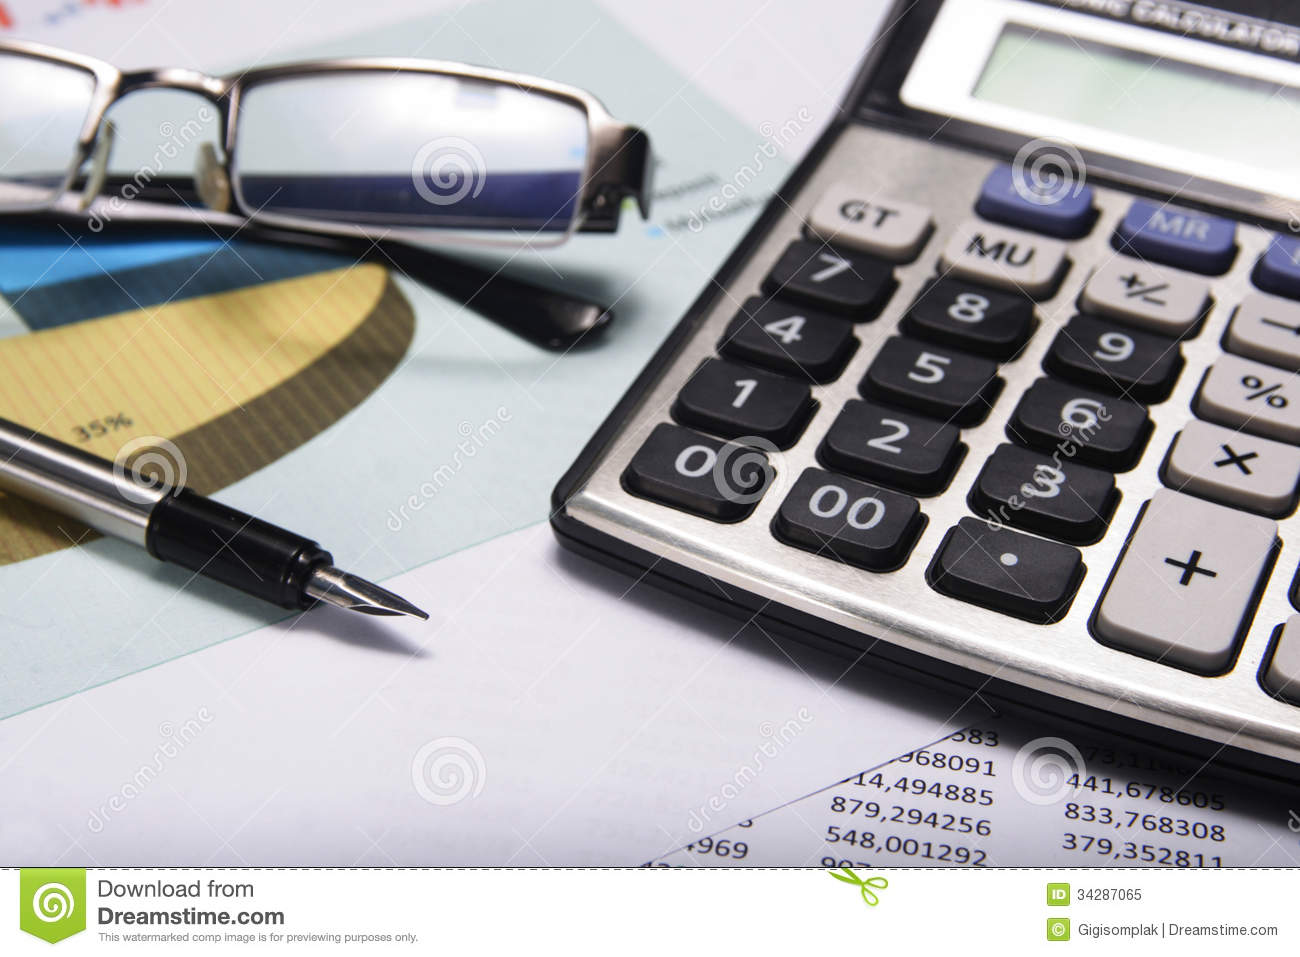 Accounting And Finance Royalty Free Stock Photo - Image: 34287065